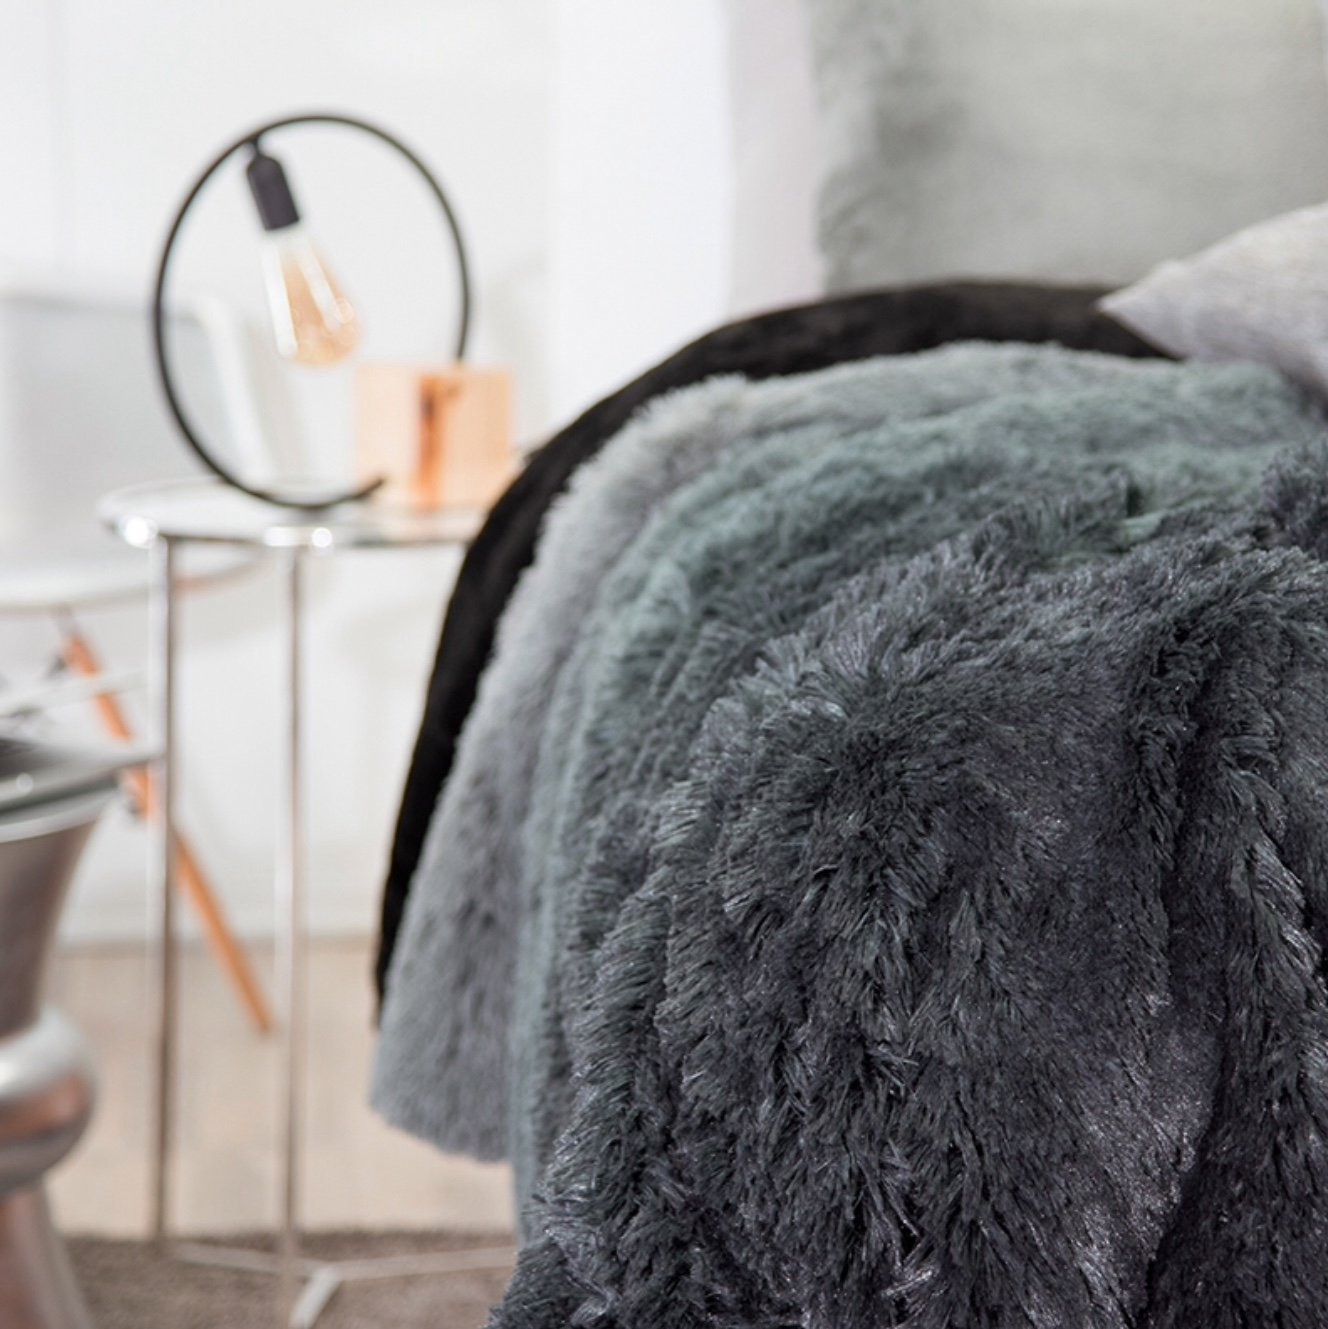 BEST SELLER BELGICA SHAGGY BLANKET WITH SHERPA VERY SOFTY THICK AND WARM KING SIZE